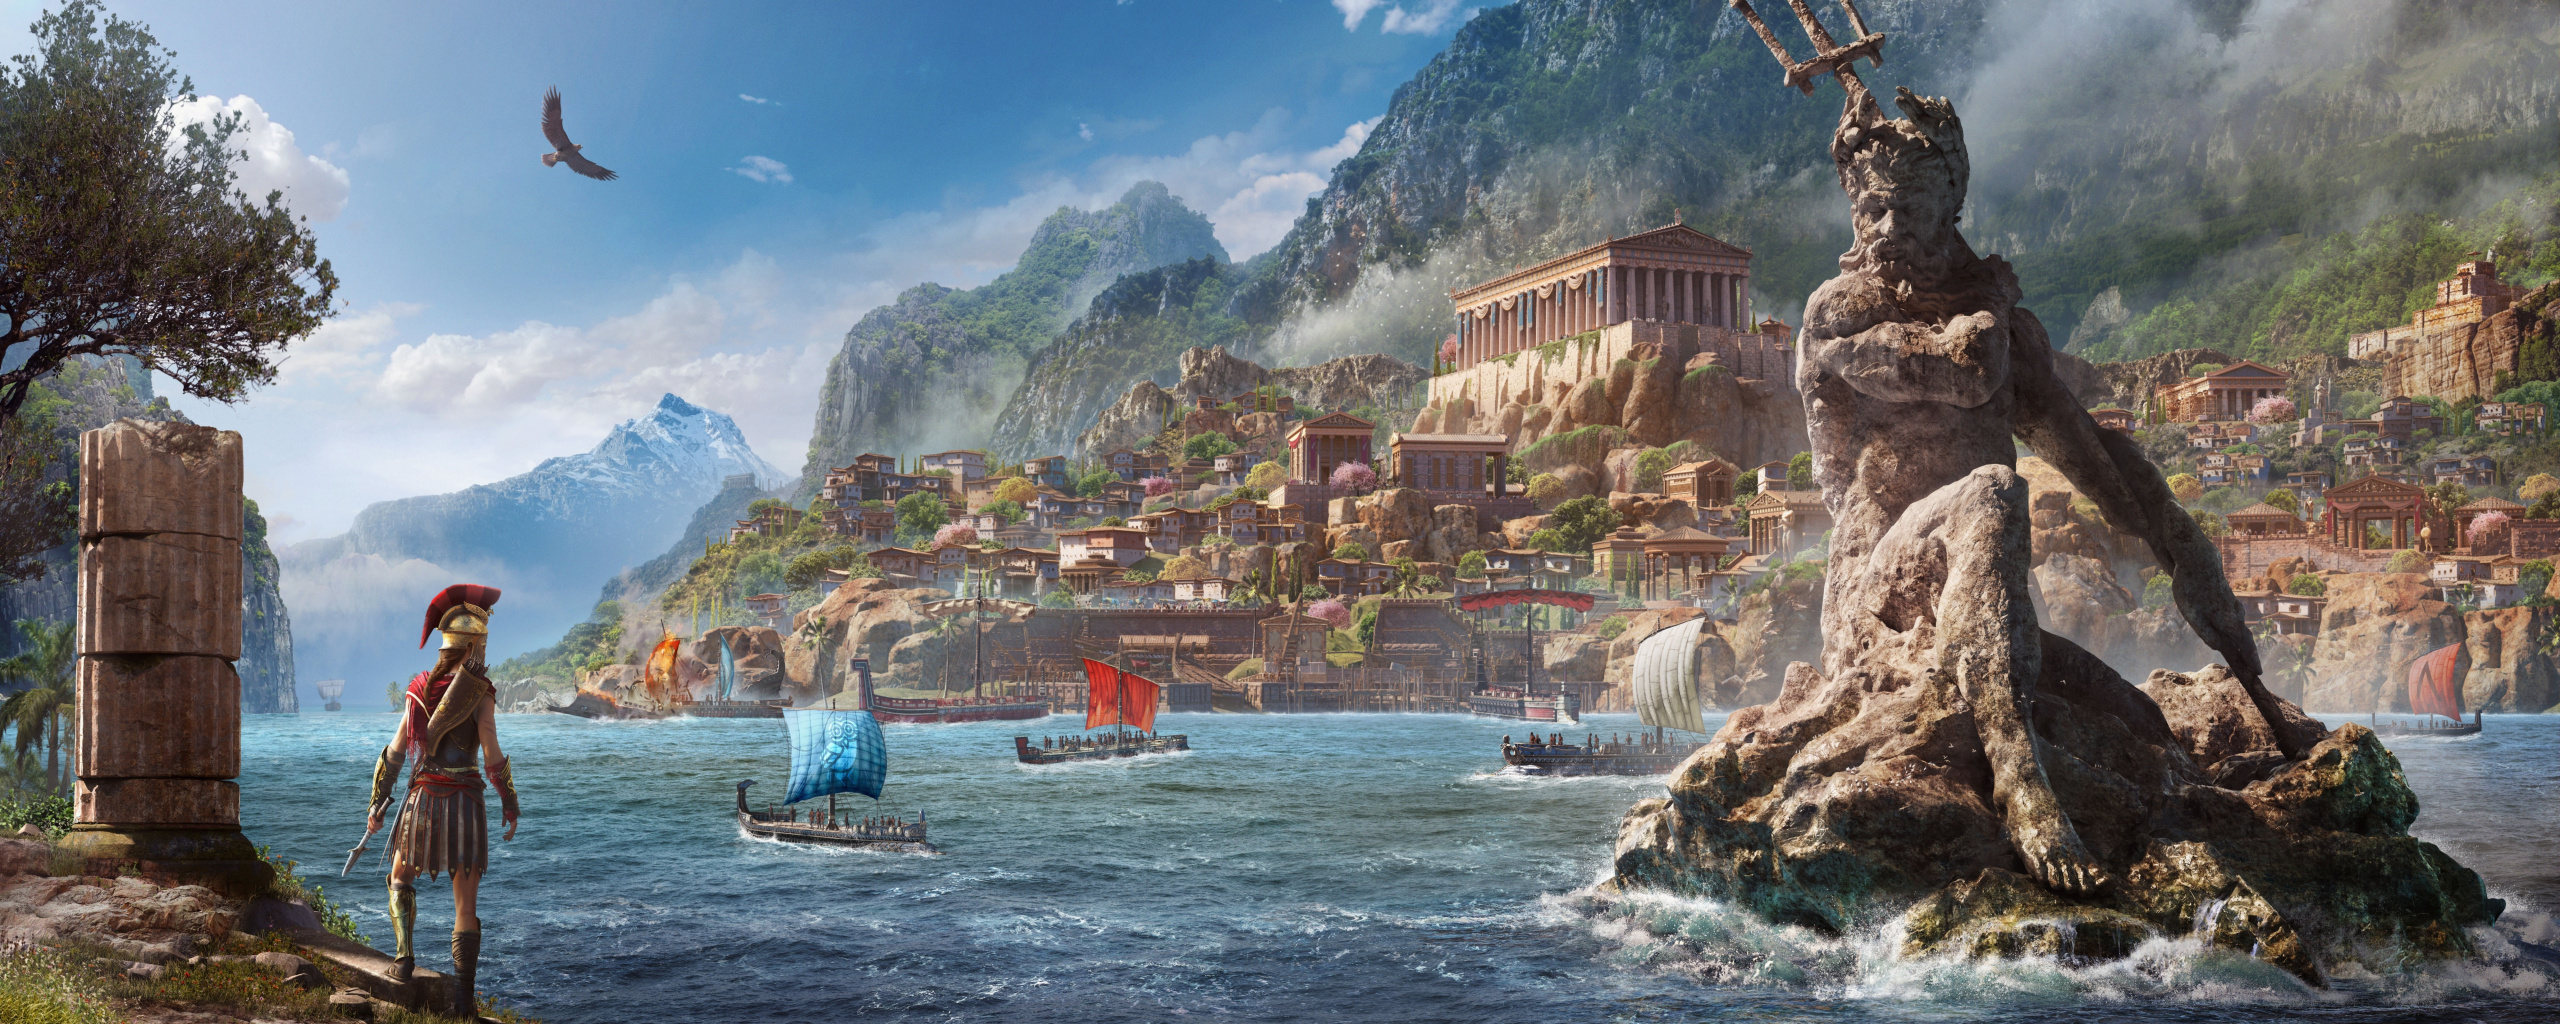 Wallpaper City River Bank Assassin S Creed Odyssey Art Of